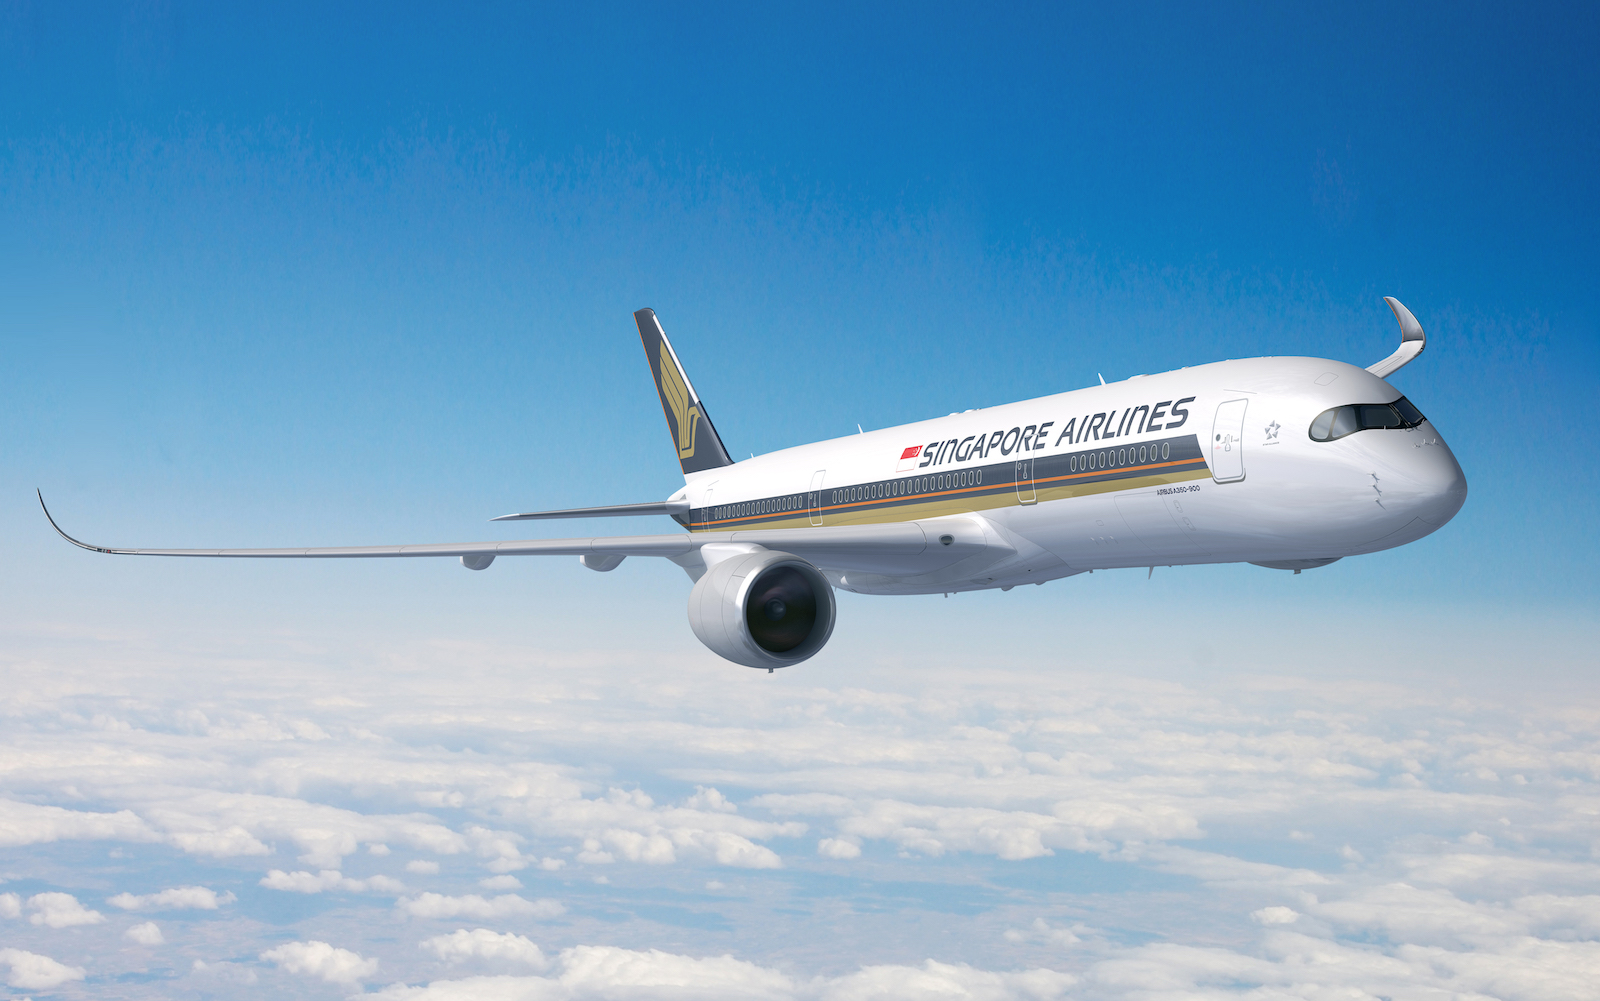 Singapore Airlines relaunches the world's longest flight Newark-Singapore